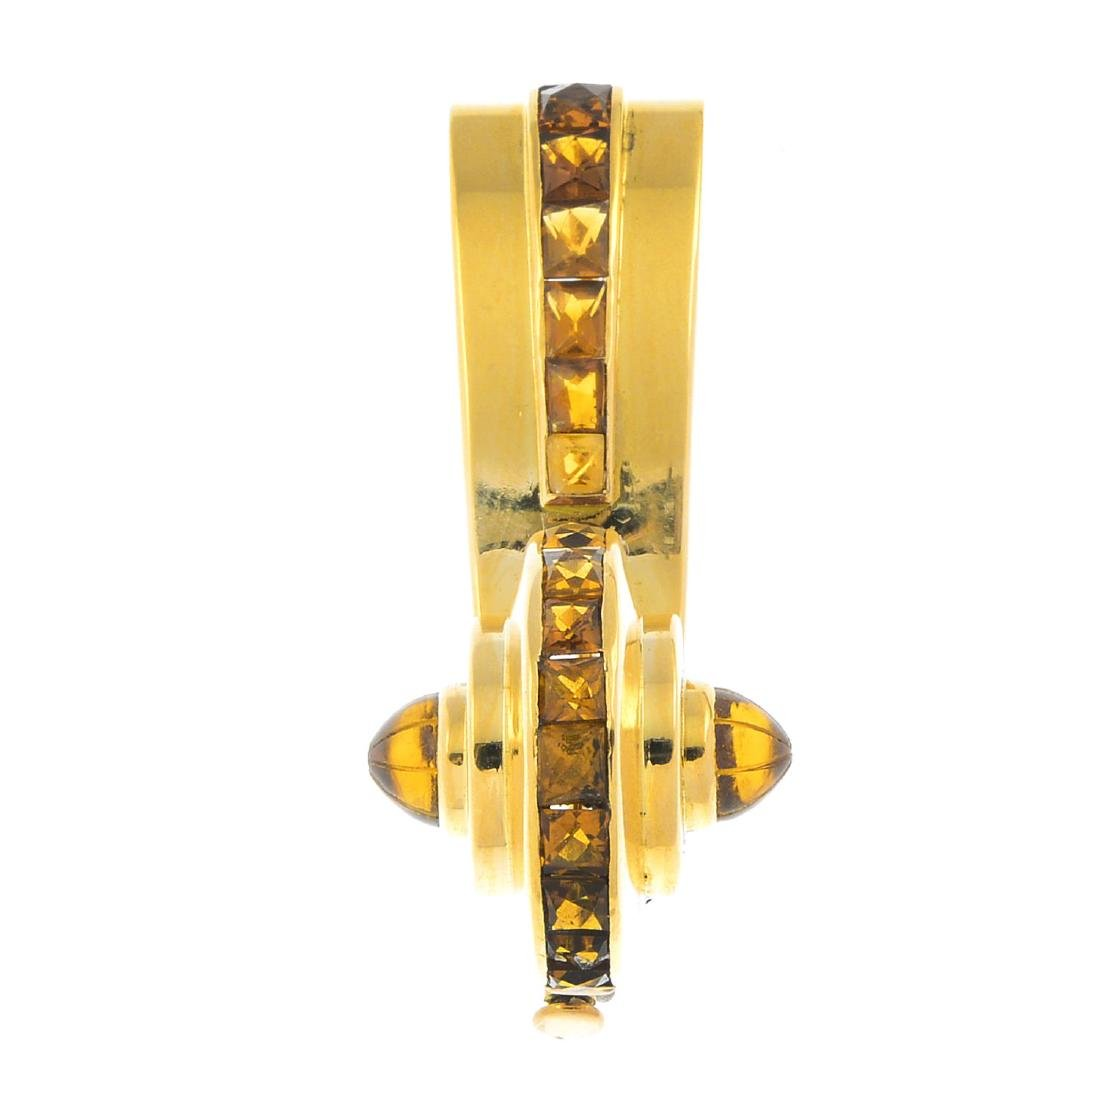 RENE BOIVIN - 1940s gold citrine brooch. Designed as a